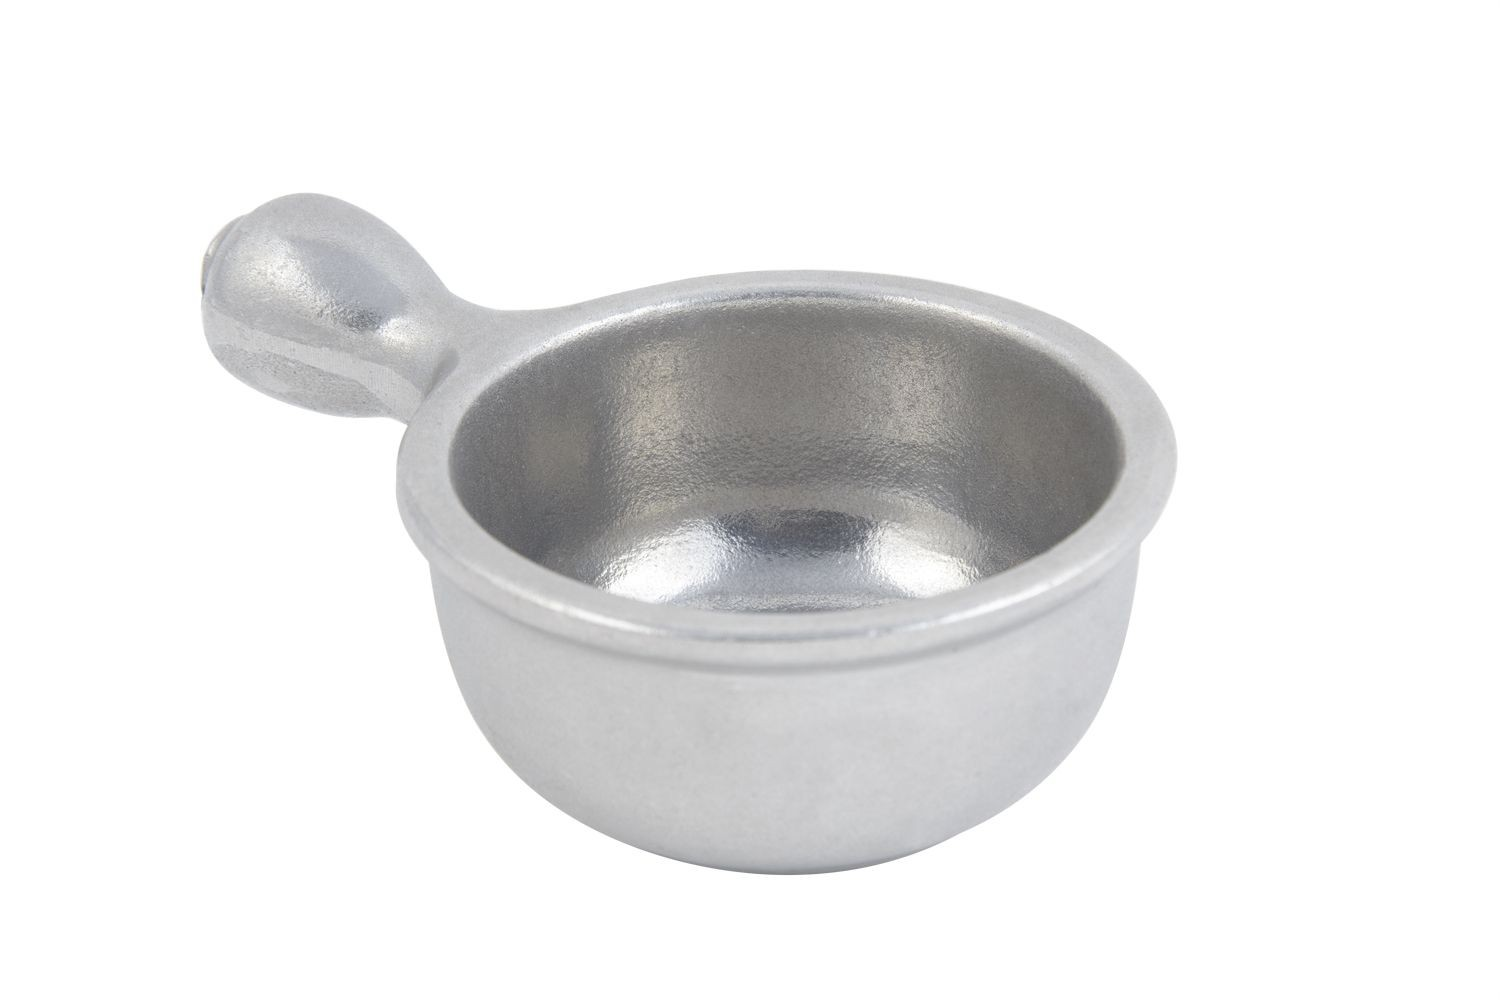 Bon Chef 3011P Soup Bowl with Handle, Pewter Glo 10 oz., Set of 6